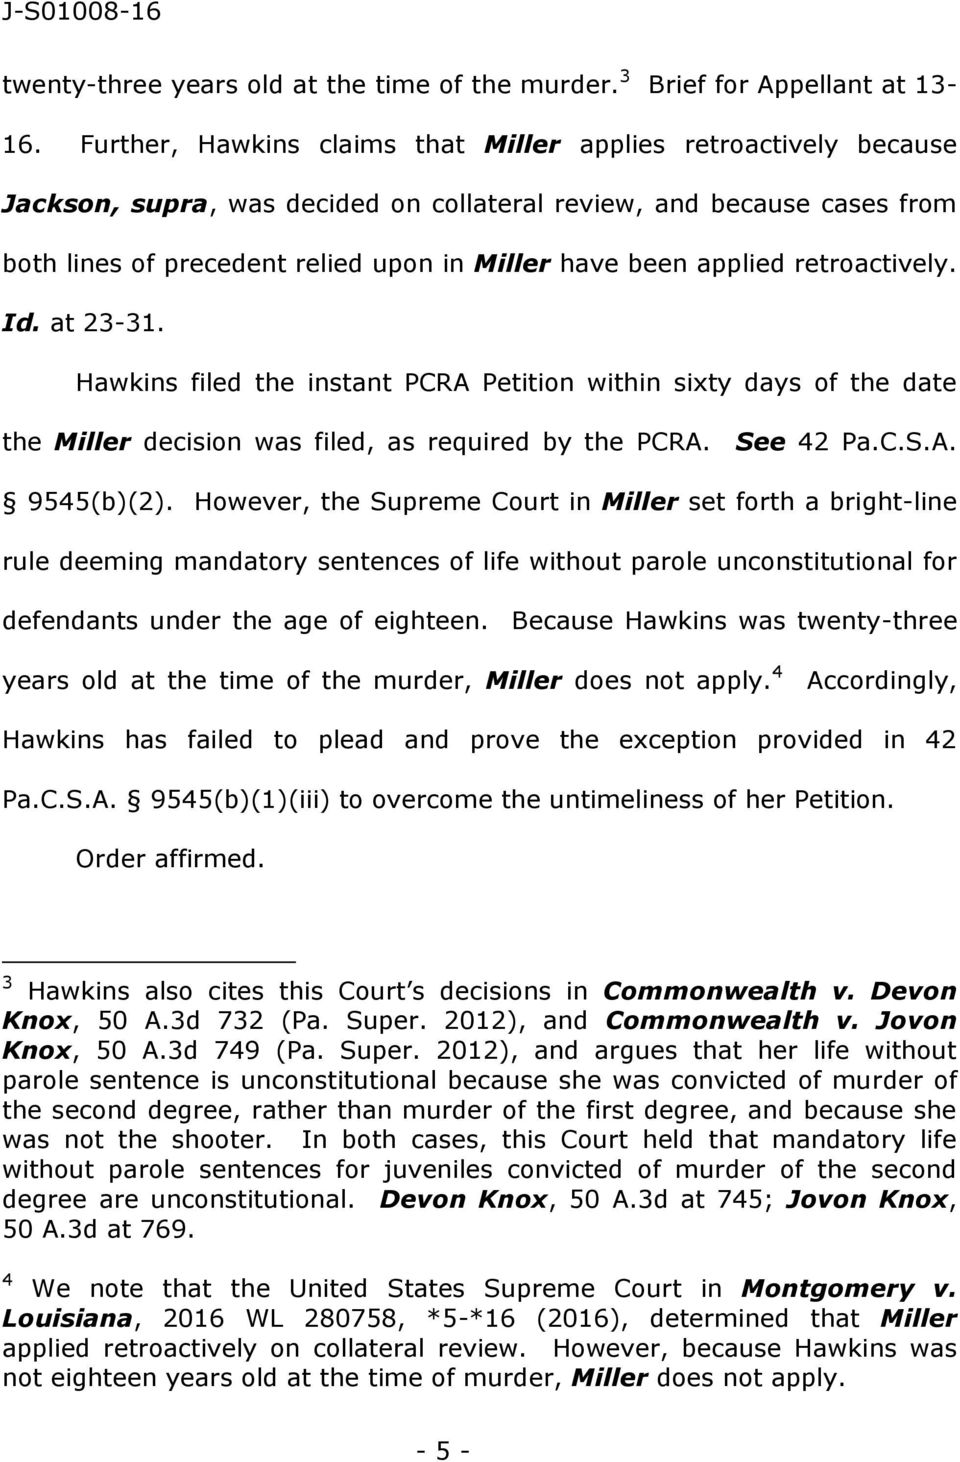 applied retroactively. Id. at 23-31. Hawkins filed the instant PCRA Petition within sixty days of the date the Miller decision was filed, as required by the PCRA. See 42 Pa.C.S.A. 9545(b)(2).